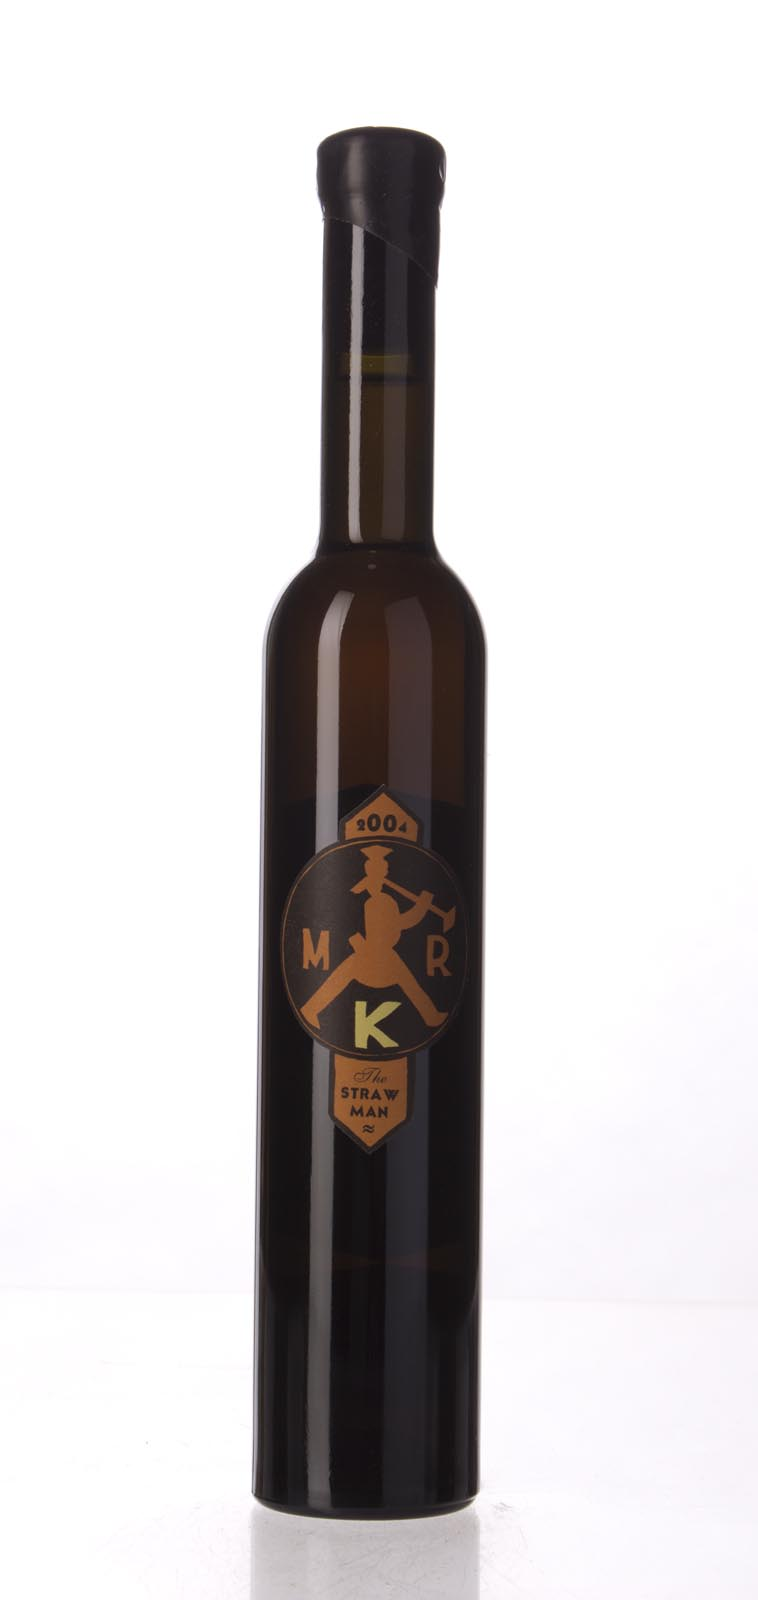 Mr. K The Strawman Vin de Paille 2004, 375mL (WA100) from The BPW - Merchants of rare and fine wines.